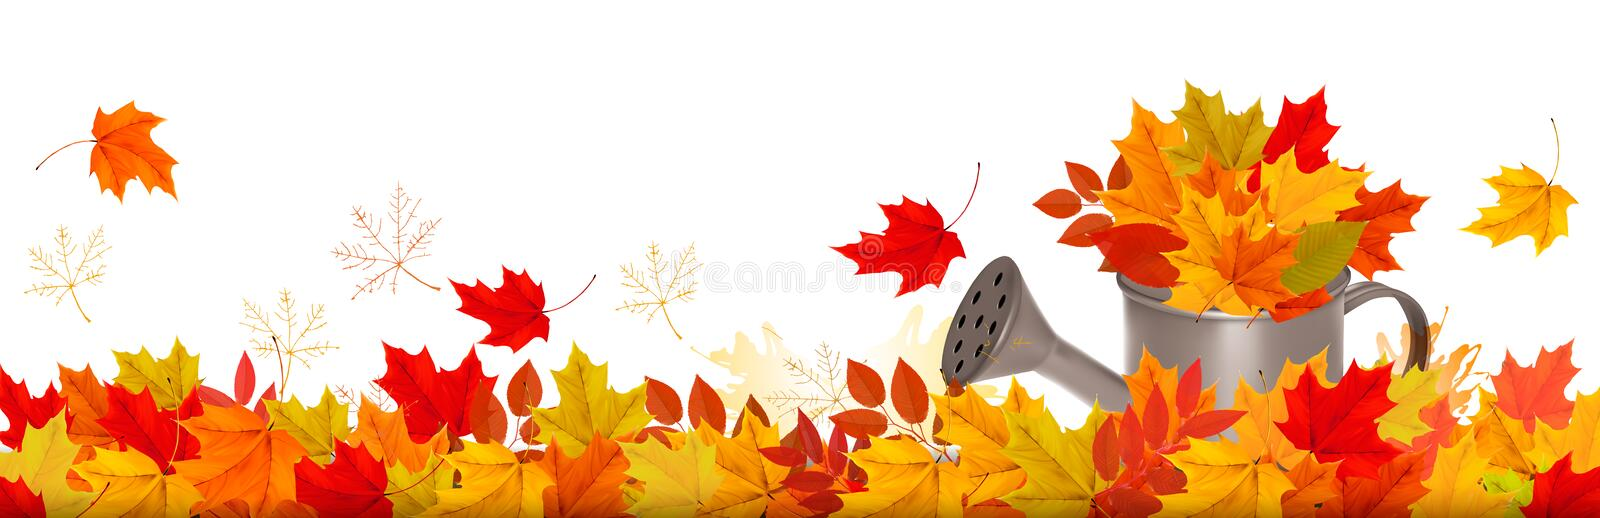 Autumn nature panorama with colorful leaves stock illustration